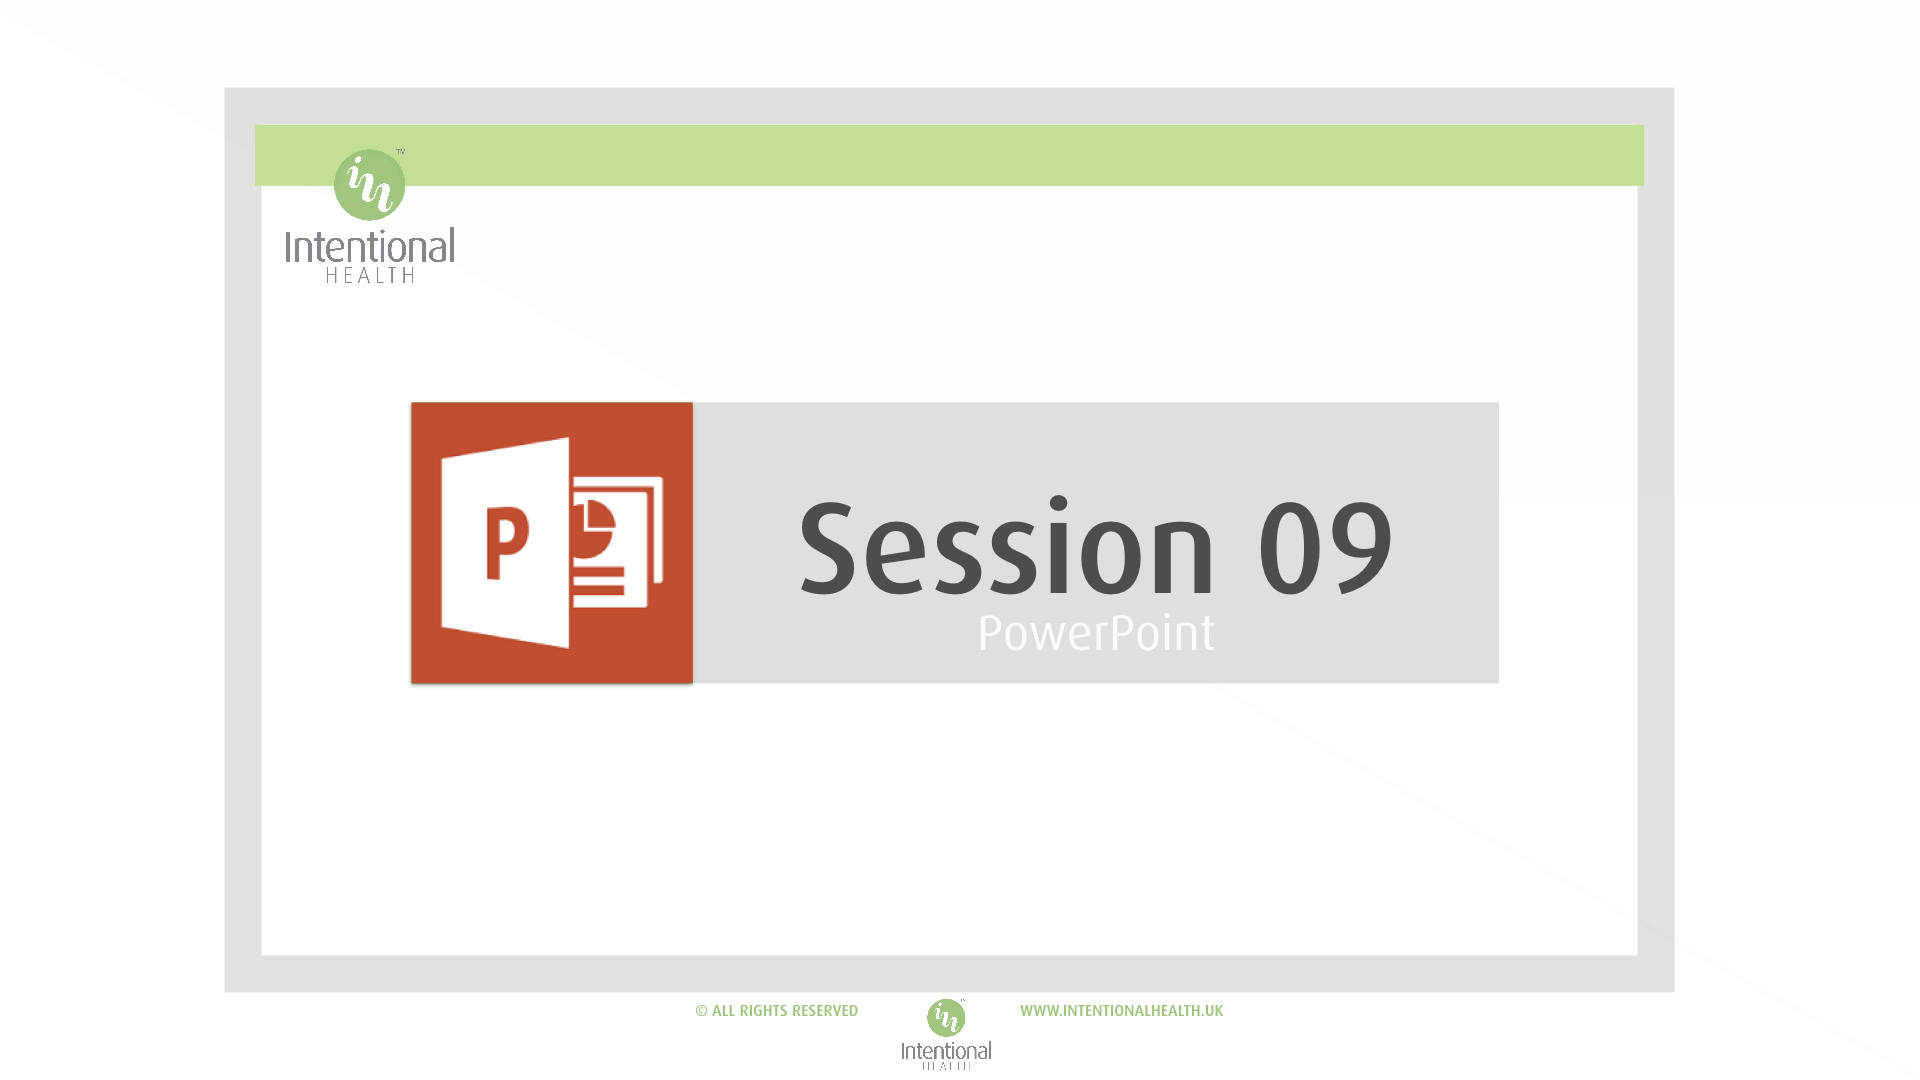 Session 09 Powerpoint